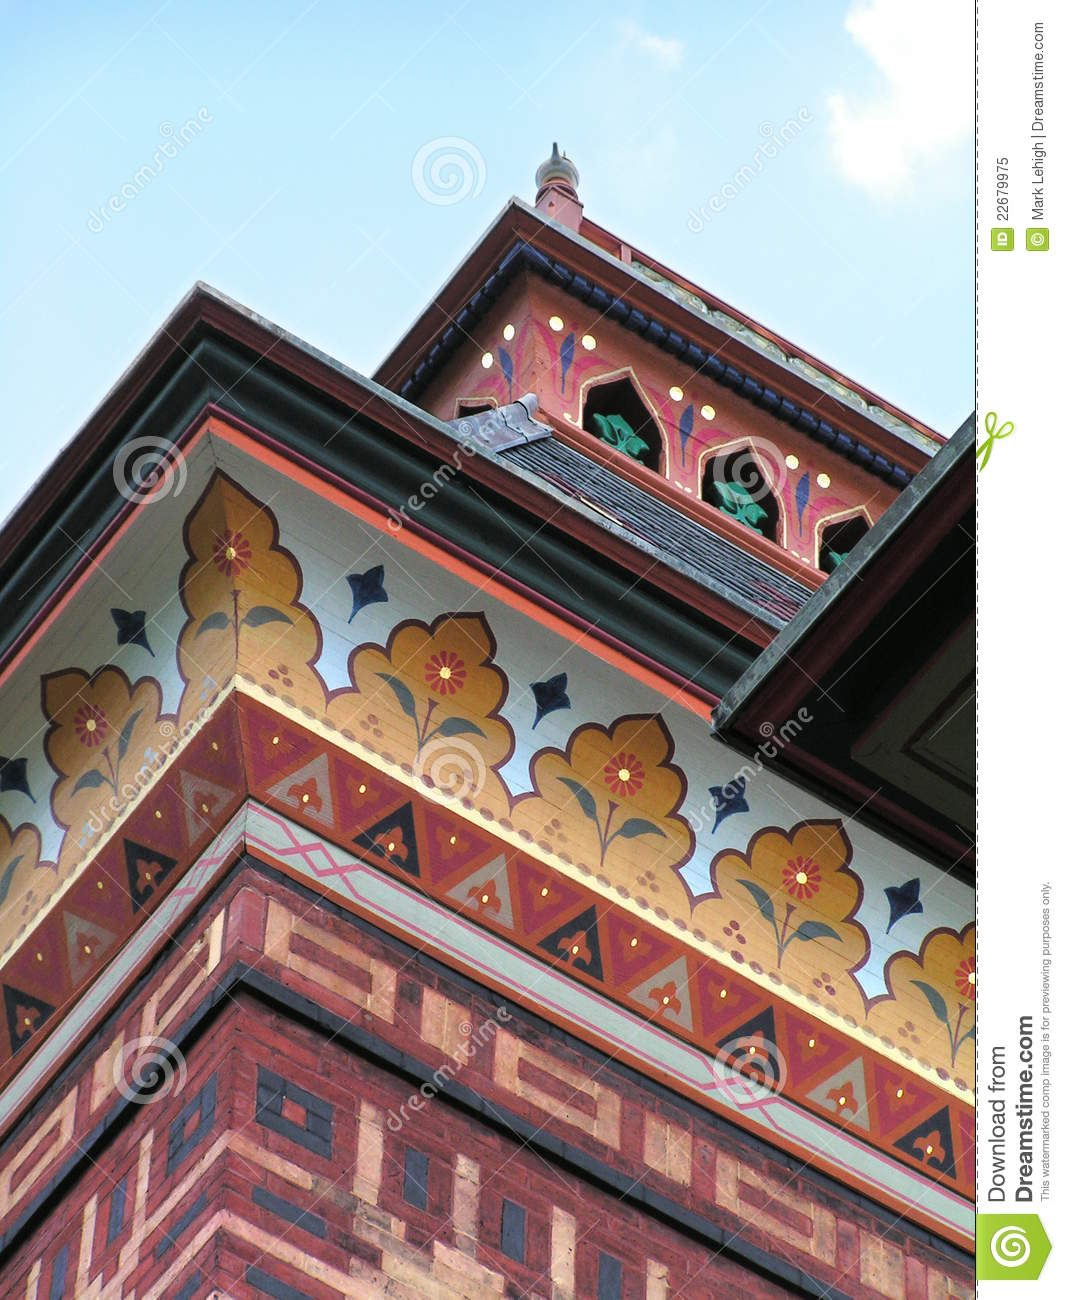 Download Olana eaves stock image. Image of brick, colors, ornate - 22679975